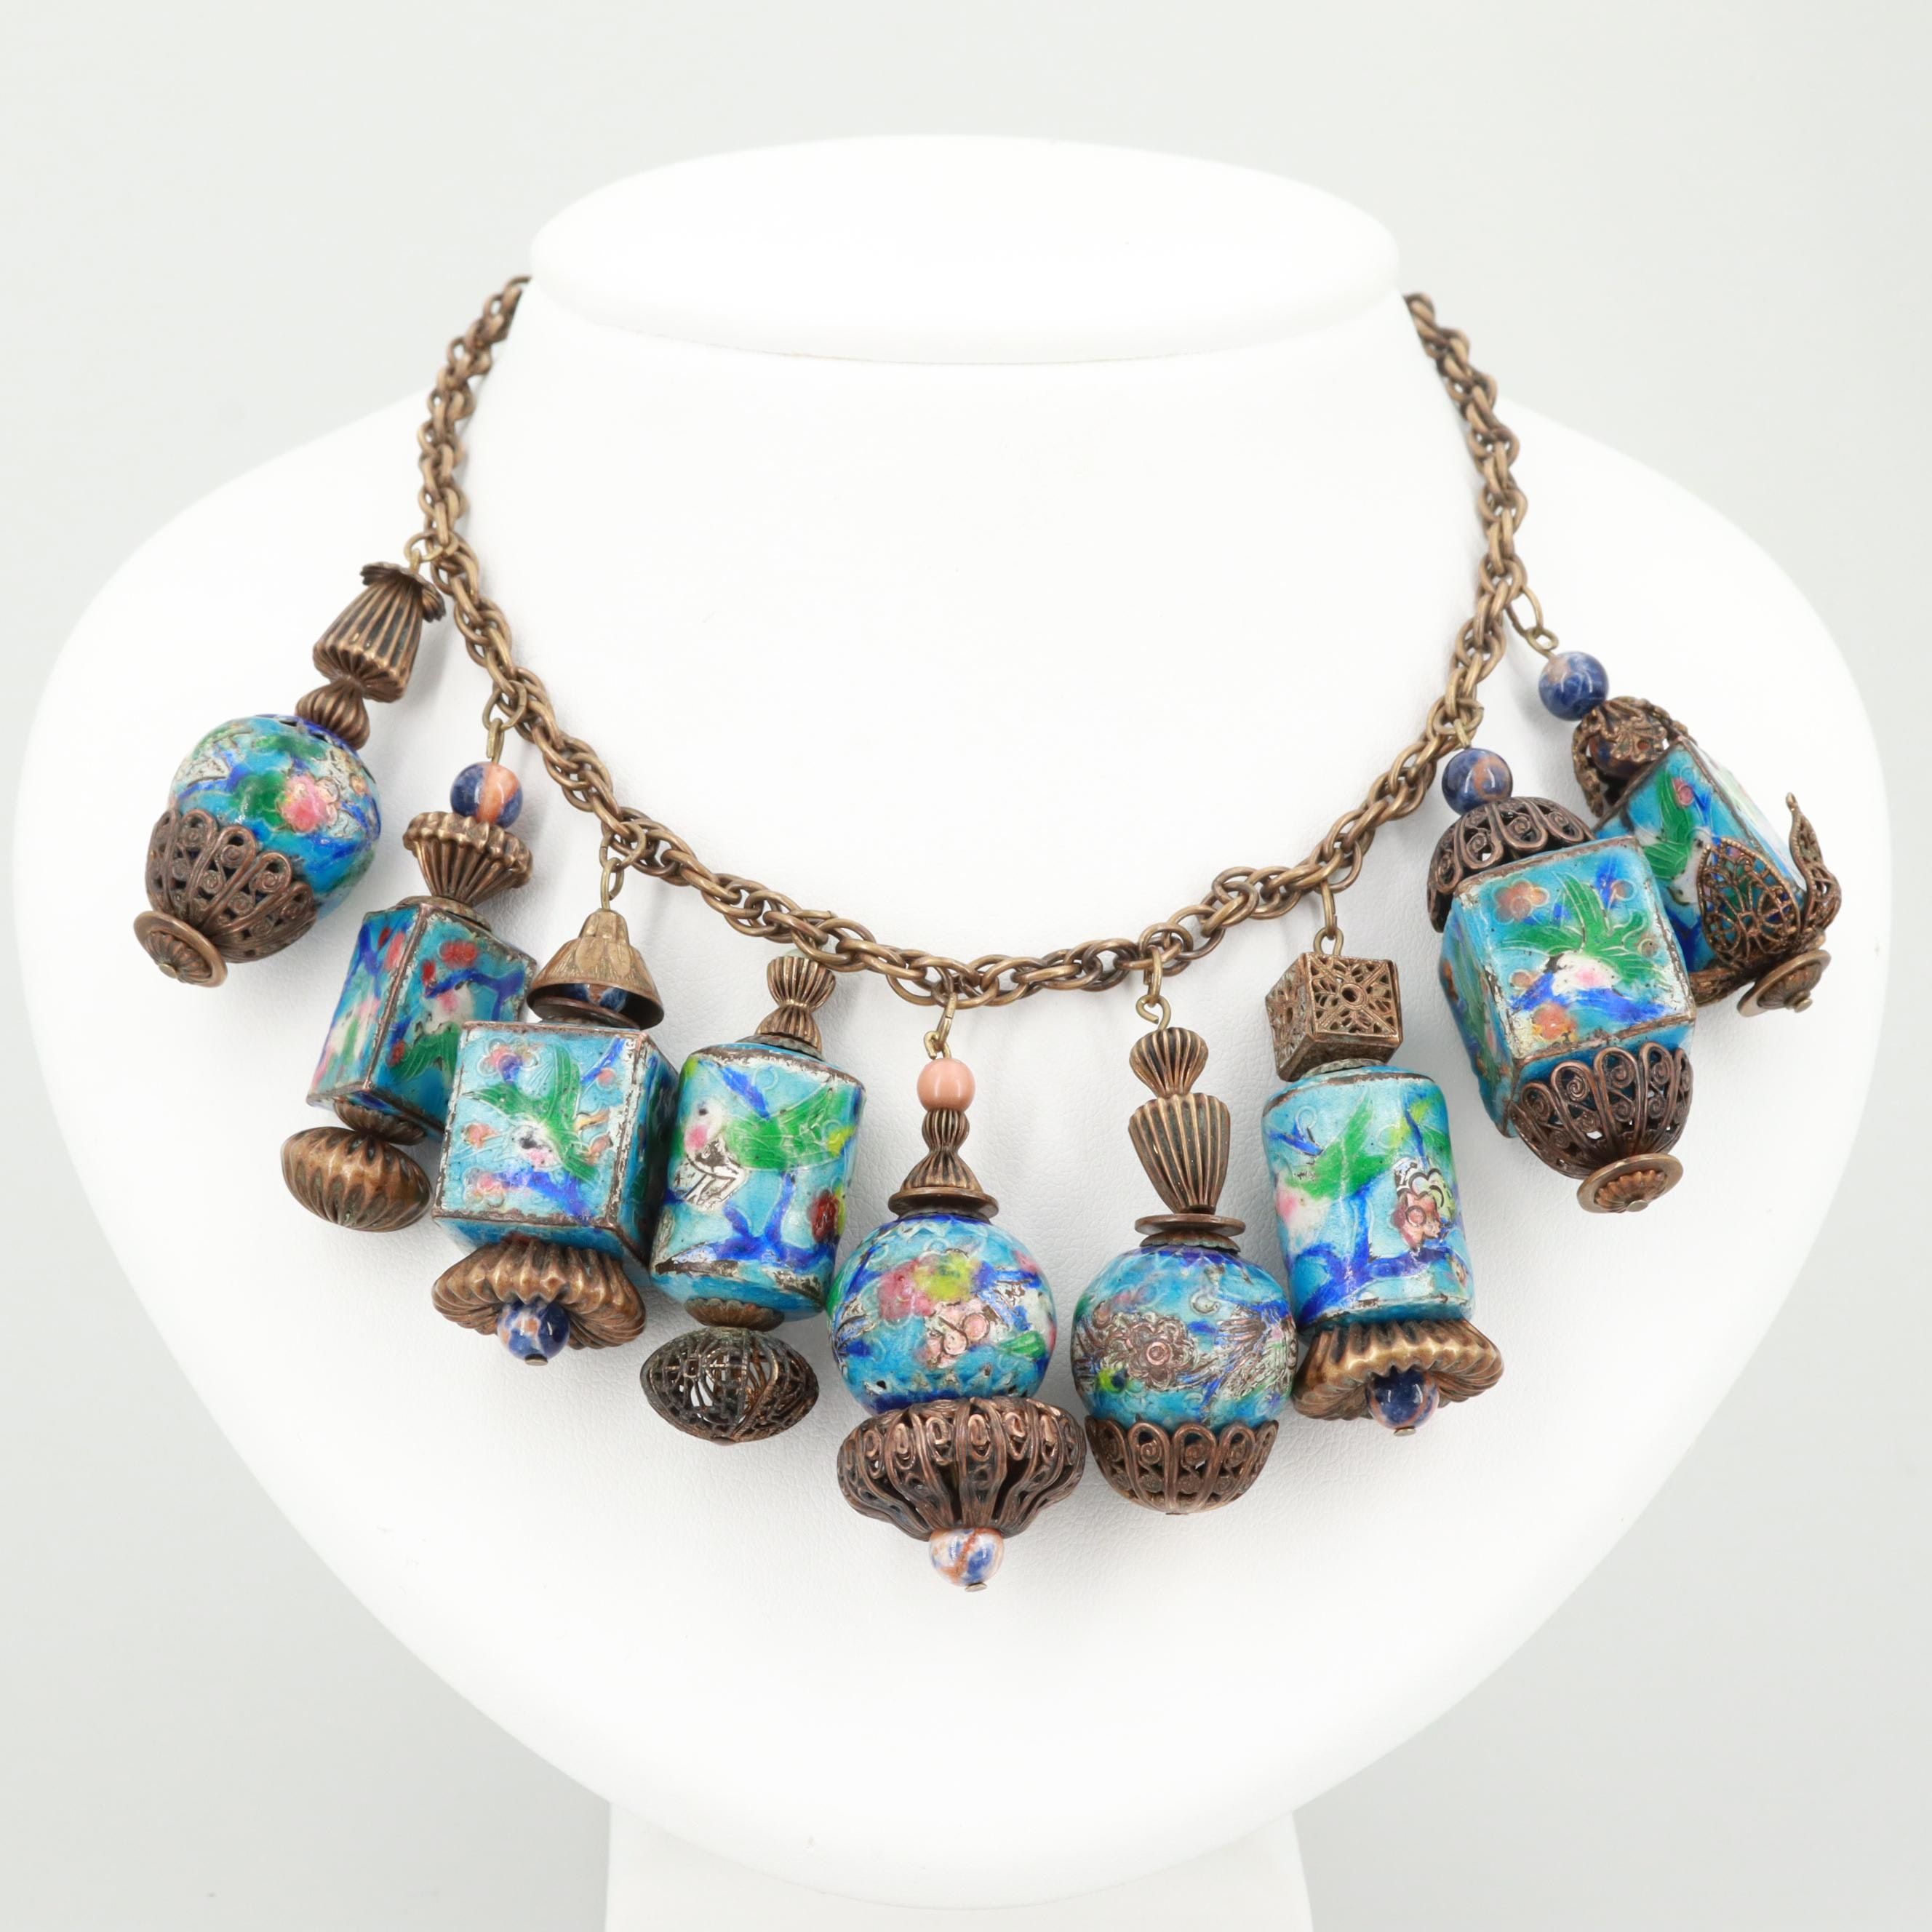 Attributed to Miriam Haskell Chinese Enamel and Glass Bead Necklace, 1930s